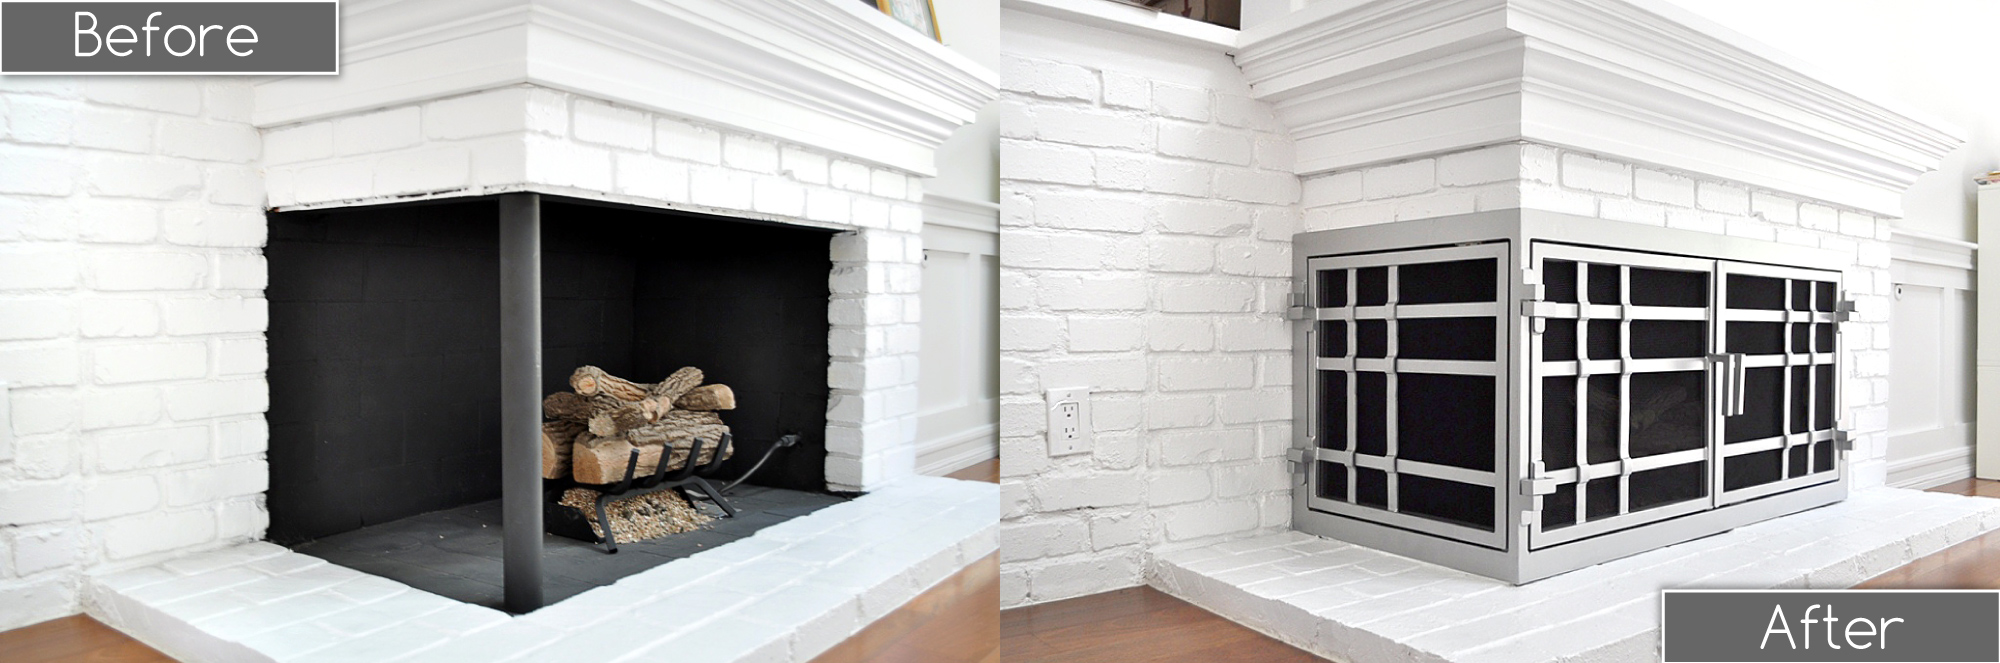 L-Shaped Fireplace Doors Before and After